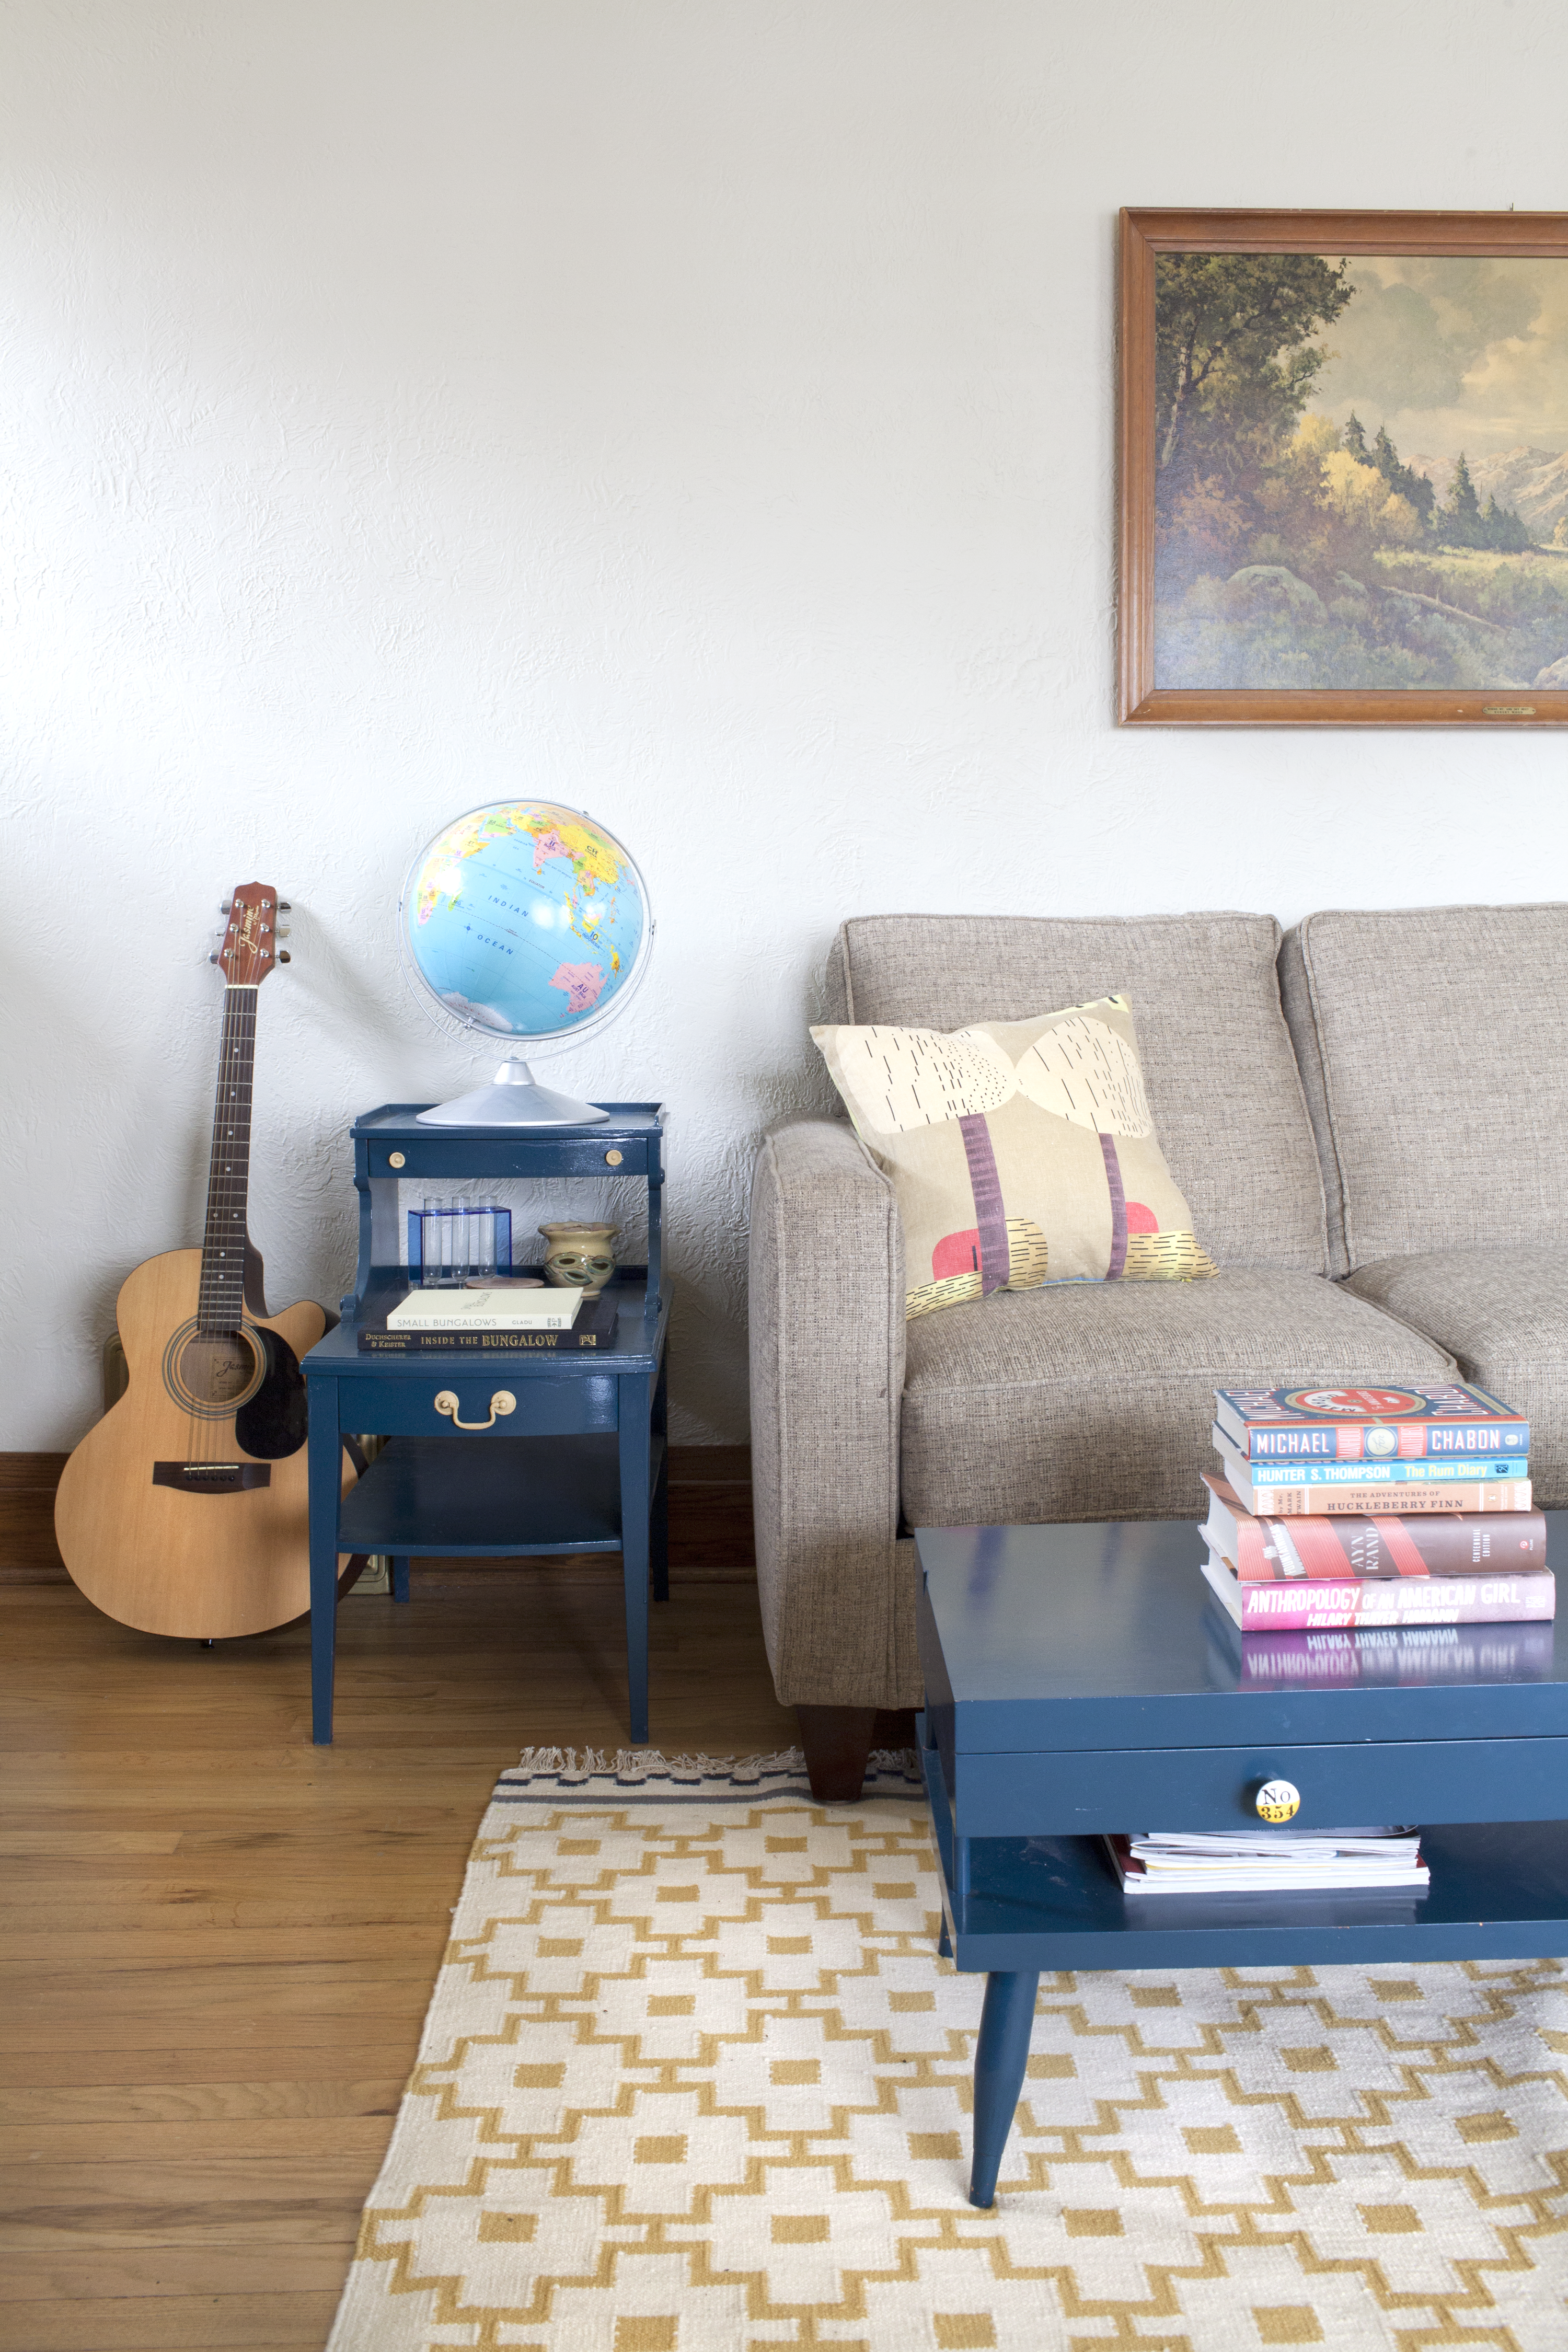 Furniture Facelift: How to Paint Furniture